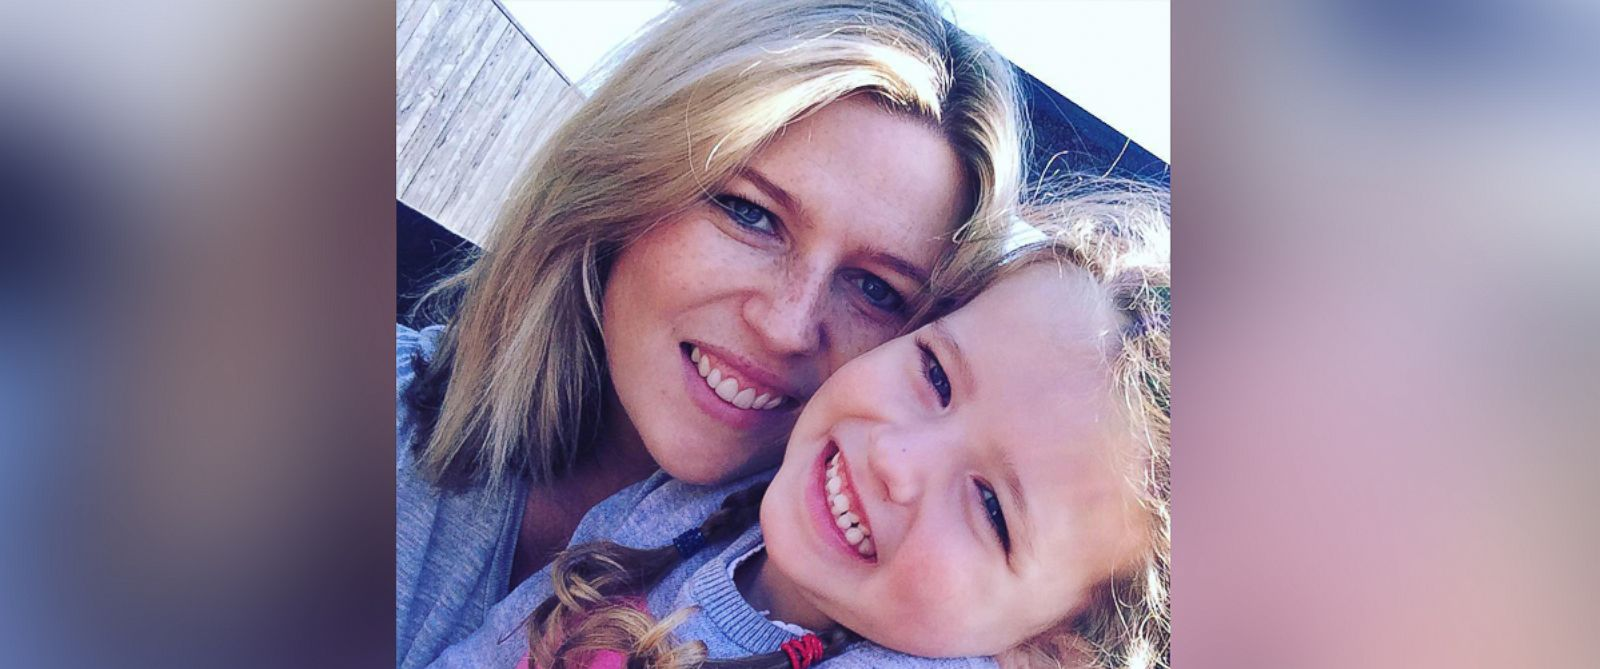 PHOTO: Susan Keogh and her 4-year-old daughter, Faith.